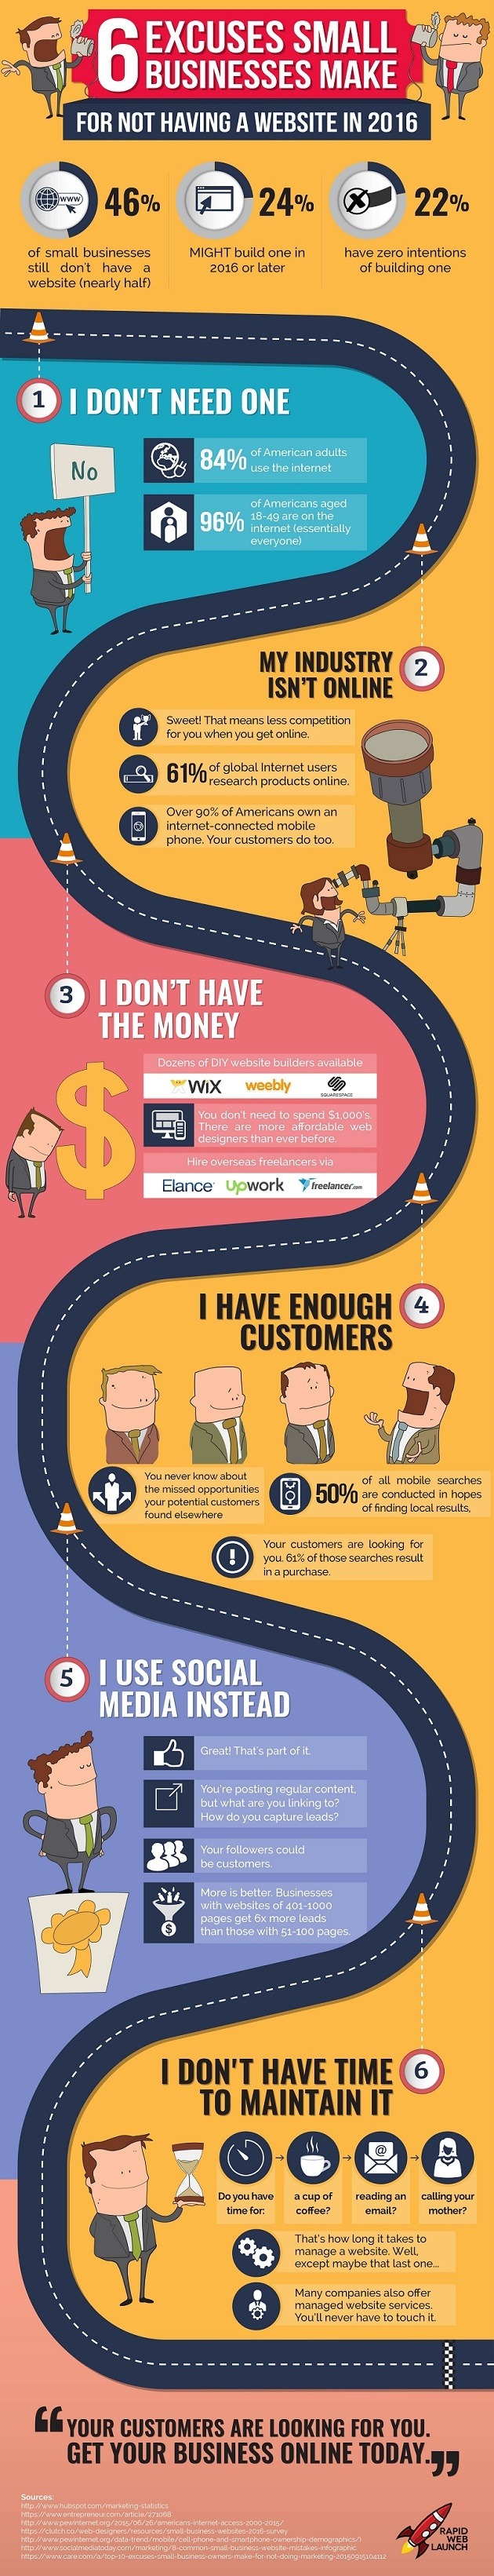 160709-six-excuses-small-businesses-make-for-not-having-a-website-infographic Six Excuses Small Businesses Make for Not Having a Website [Infographic] - InfoMark GLOBAL - Website design in Varanasi